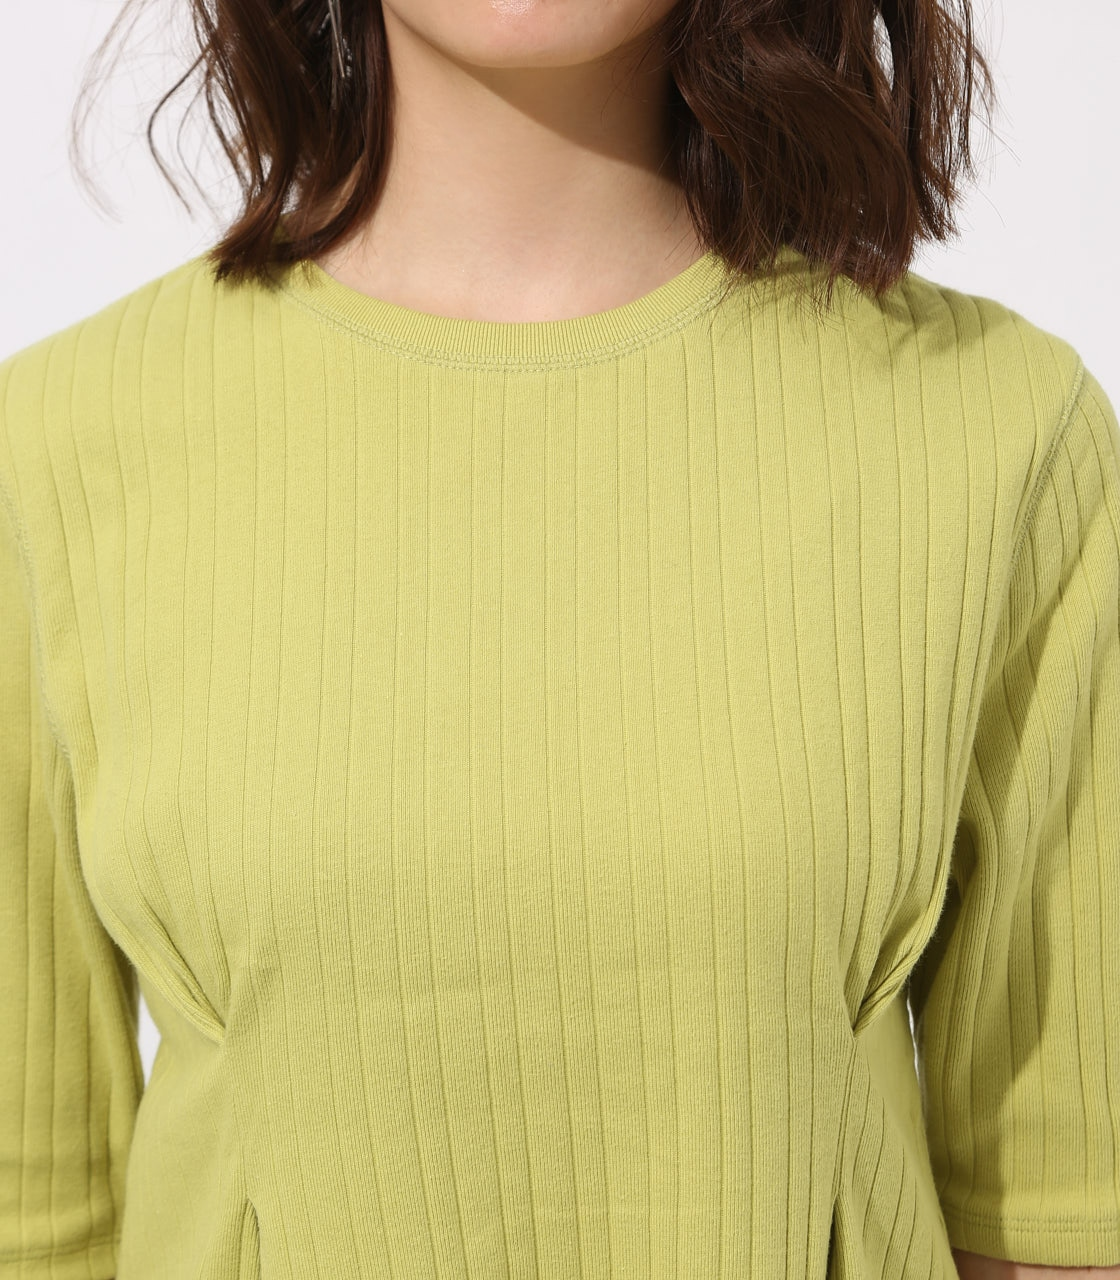 【AZUL BY MOUSSY】WAIST TUCK WIDE RIB TOPS 詳細画像 LIME 8